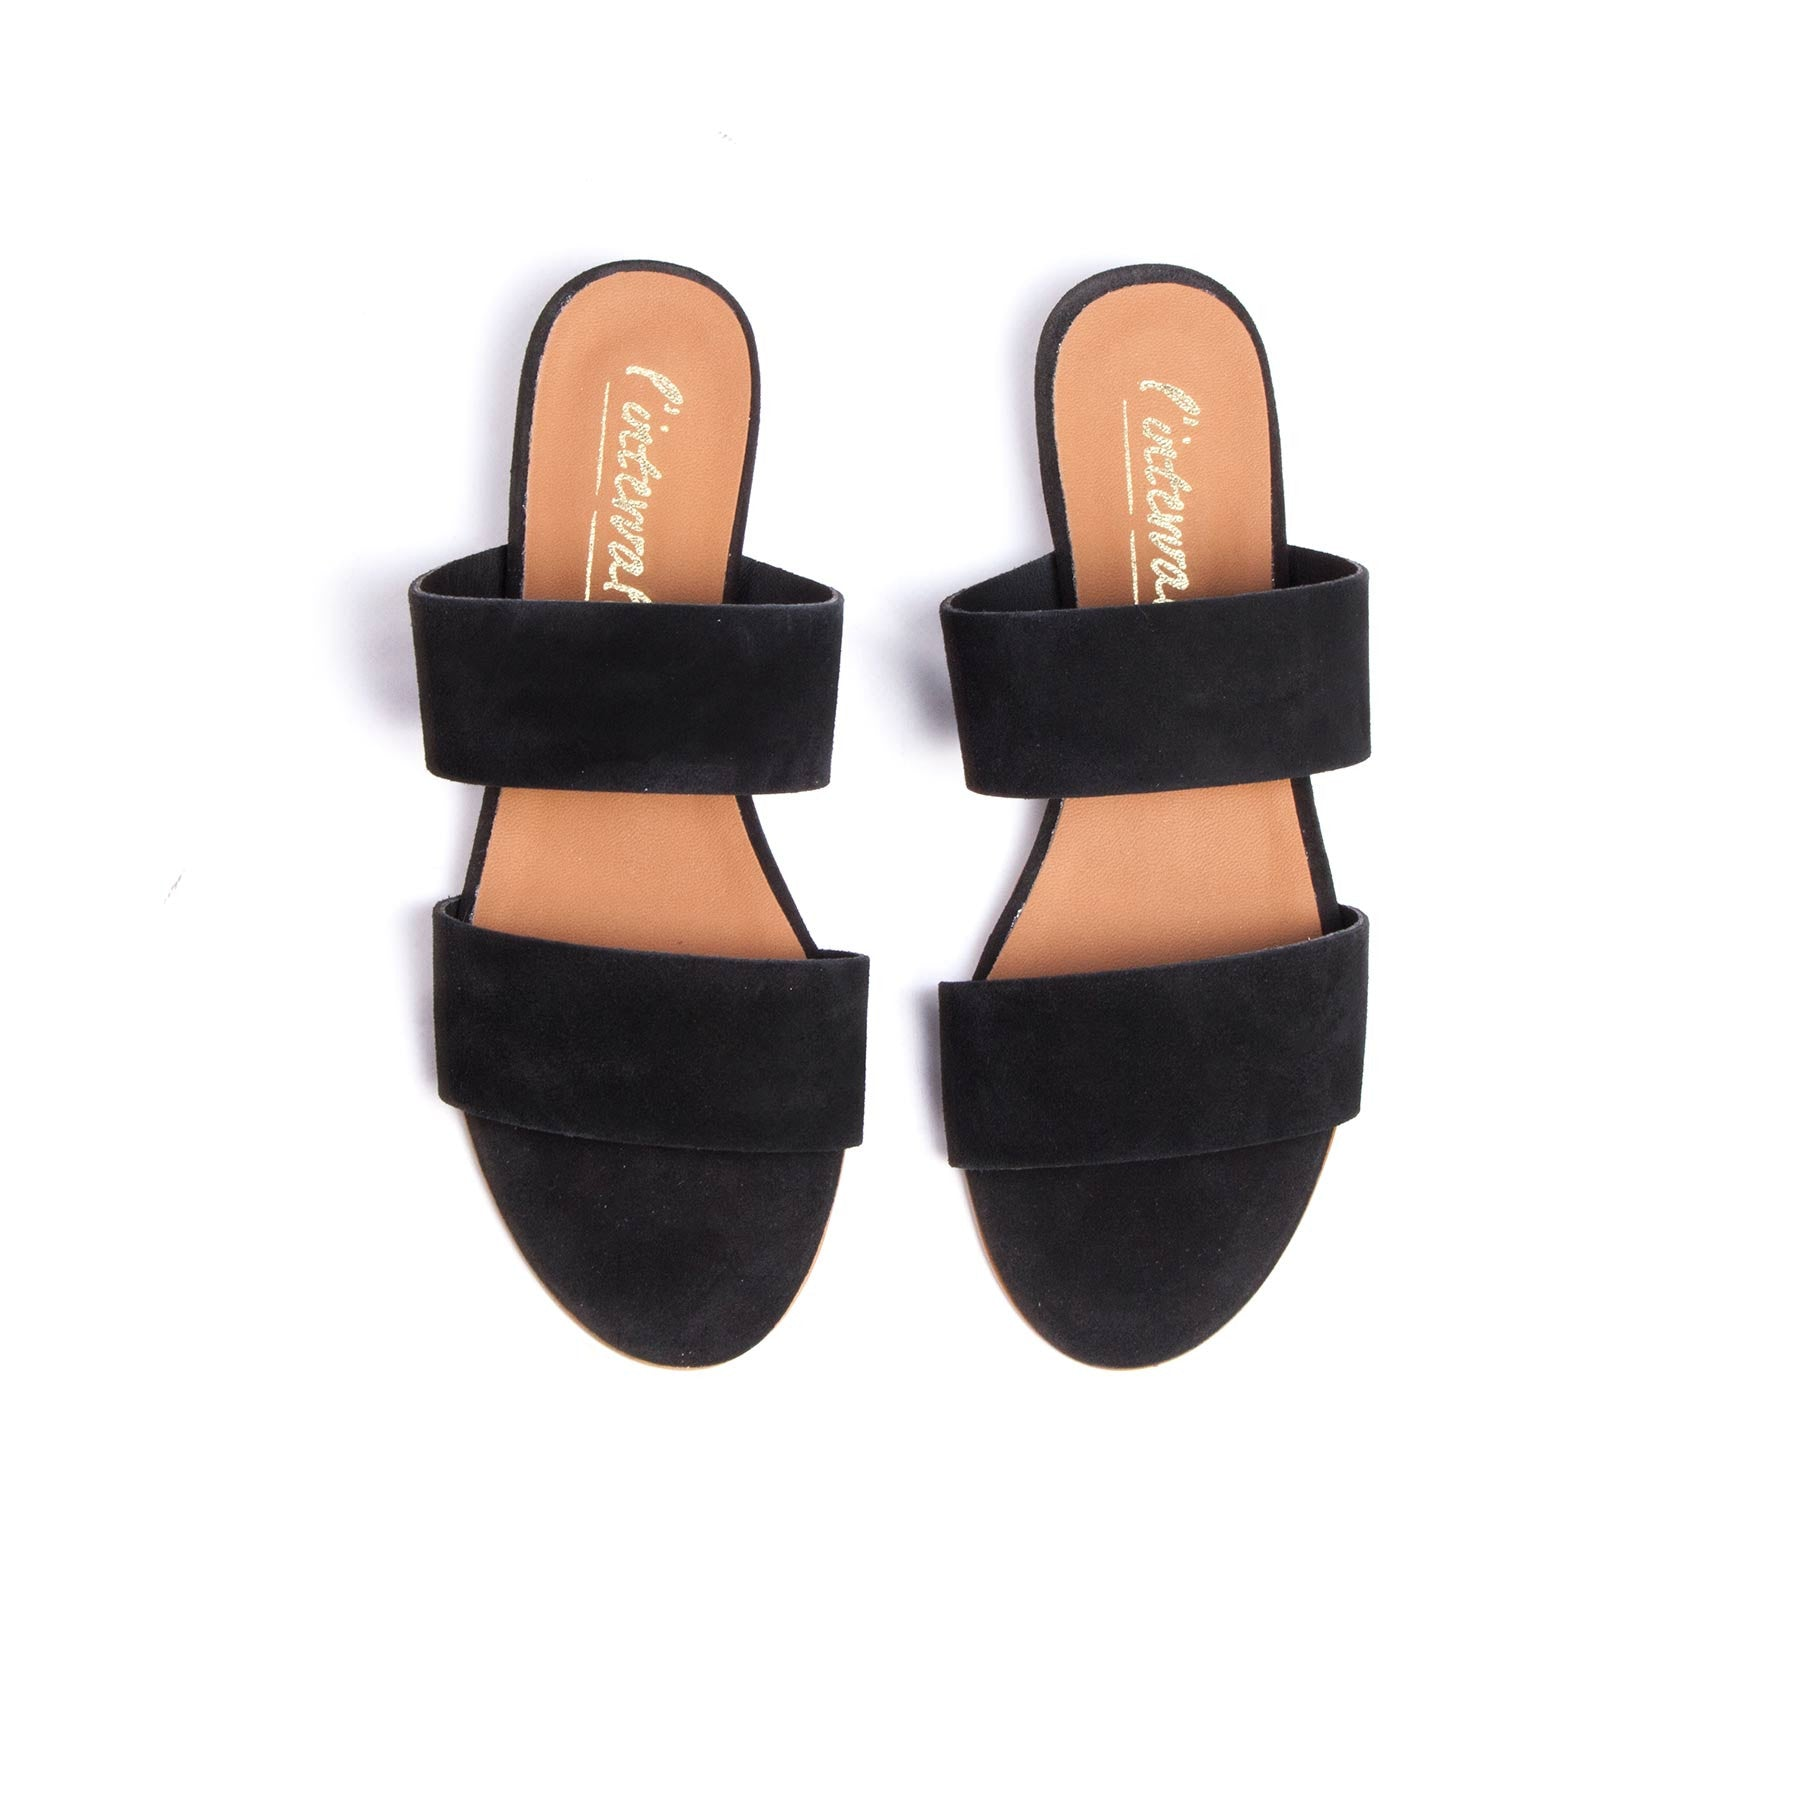 Giselle Black Suede